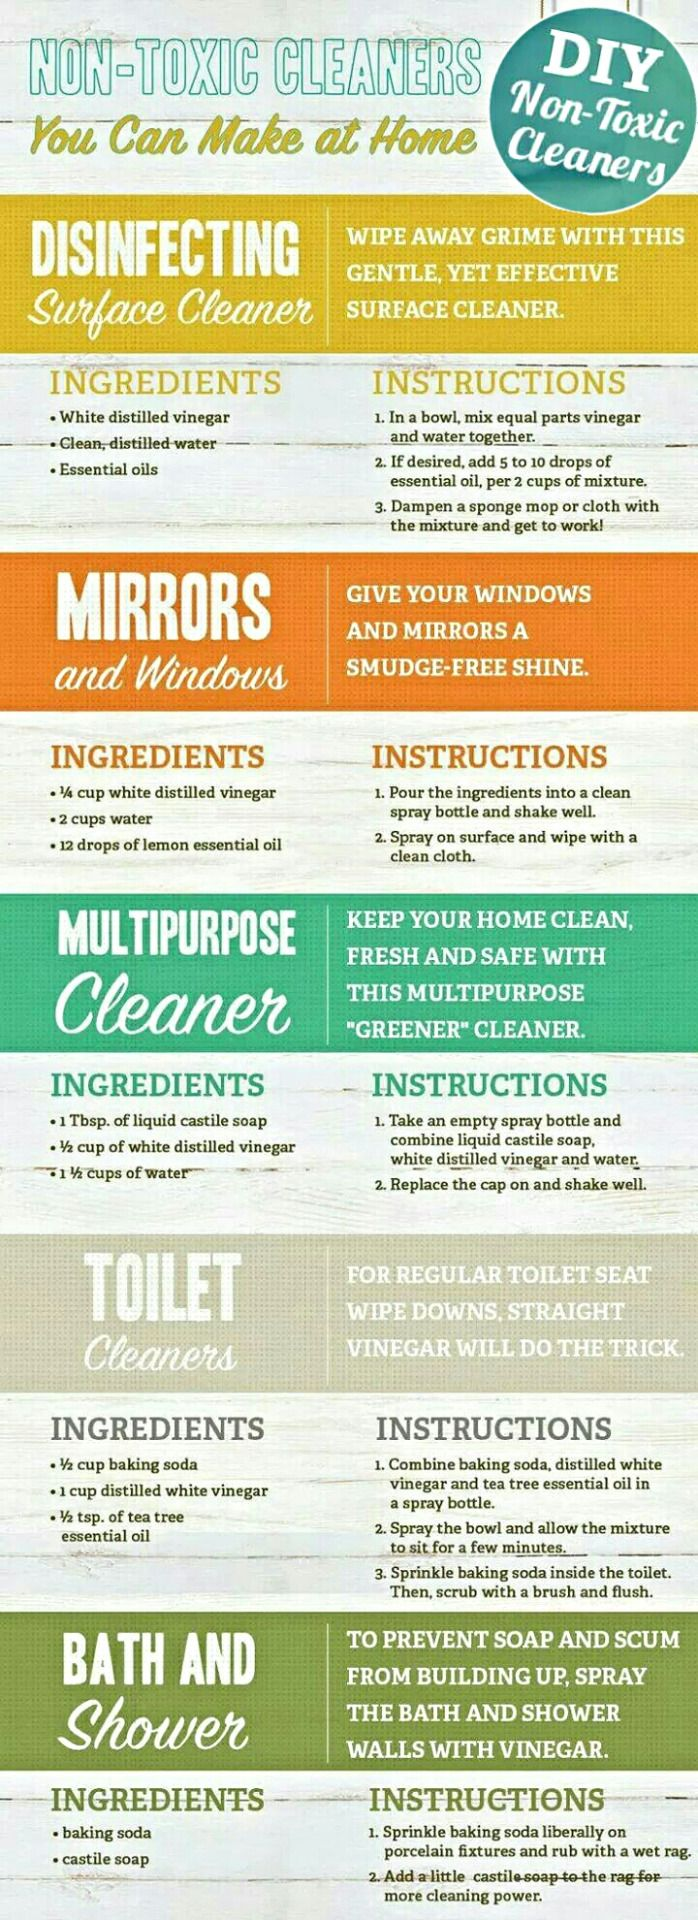 Check Out Some Of These DIY Non-Toxic Cleaners That Use Pure Essential Oils. #doTERRA #PureEssentialOilsForWellness